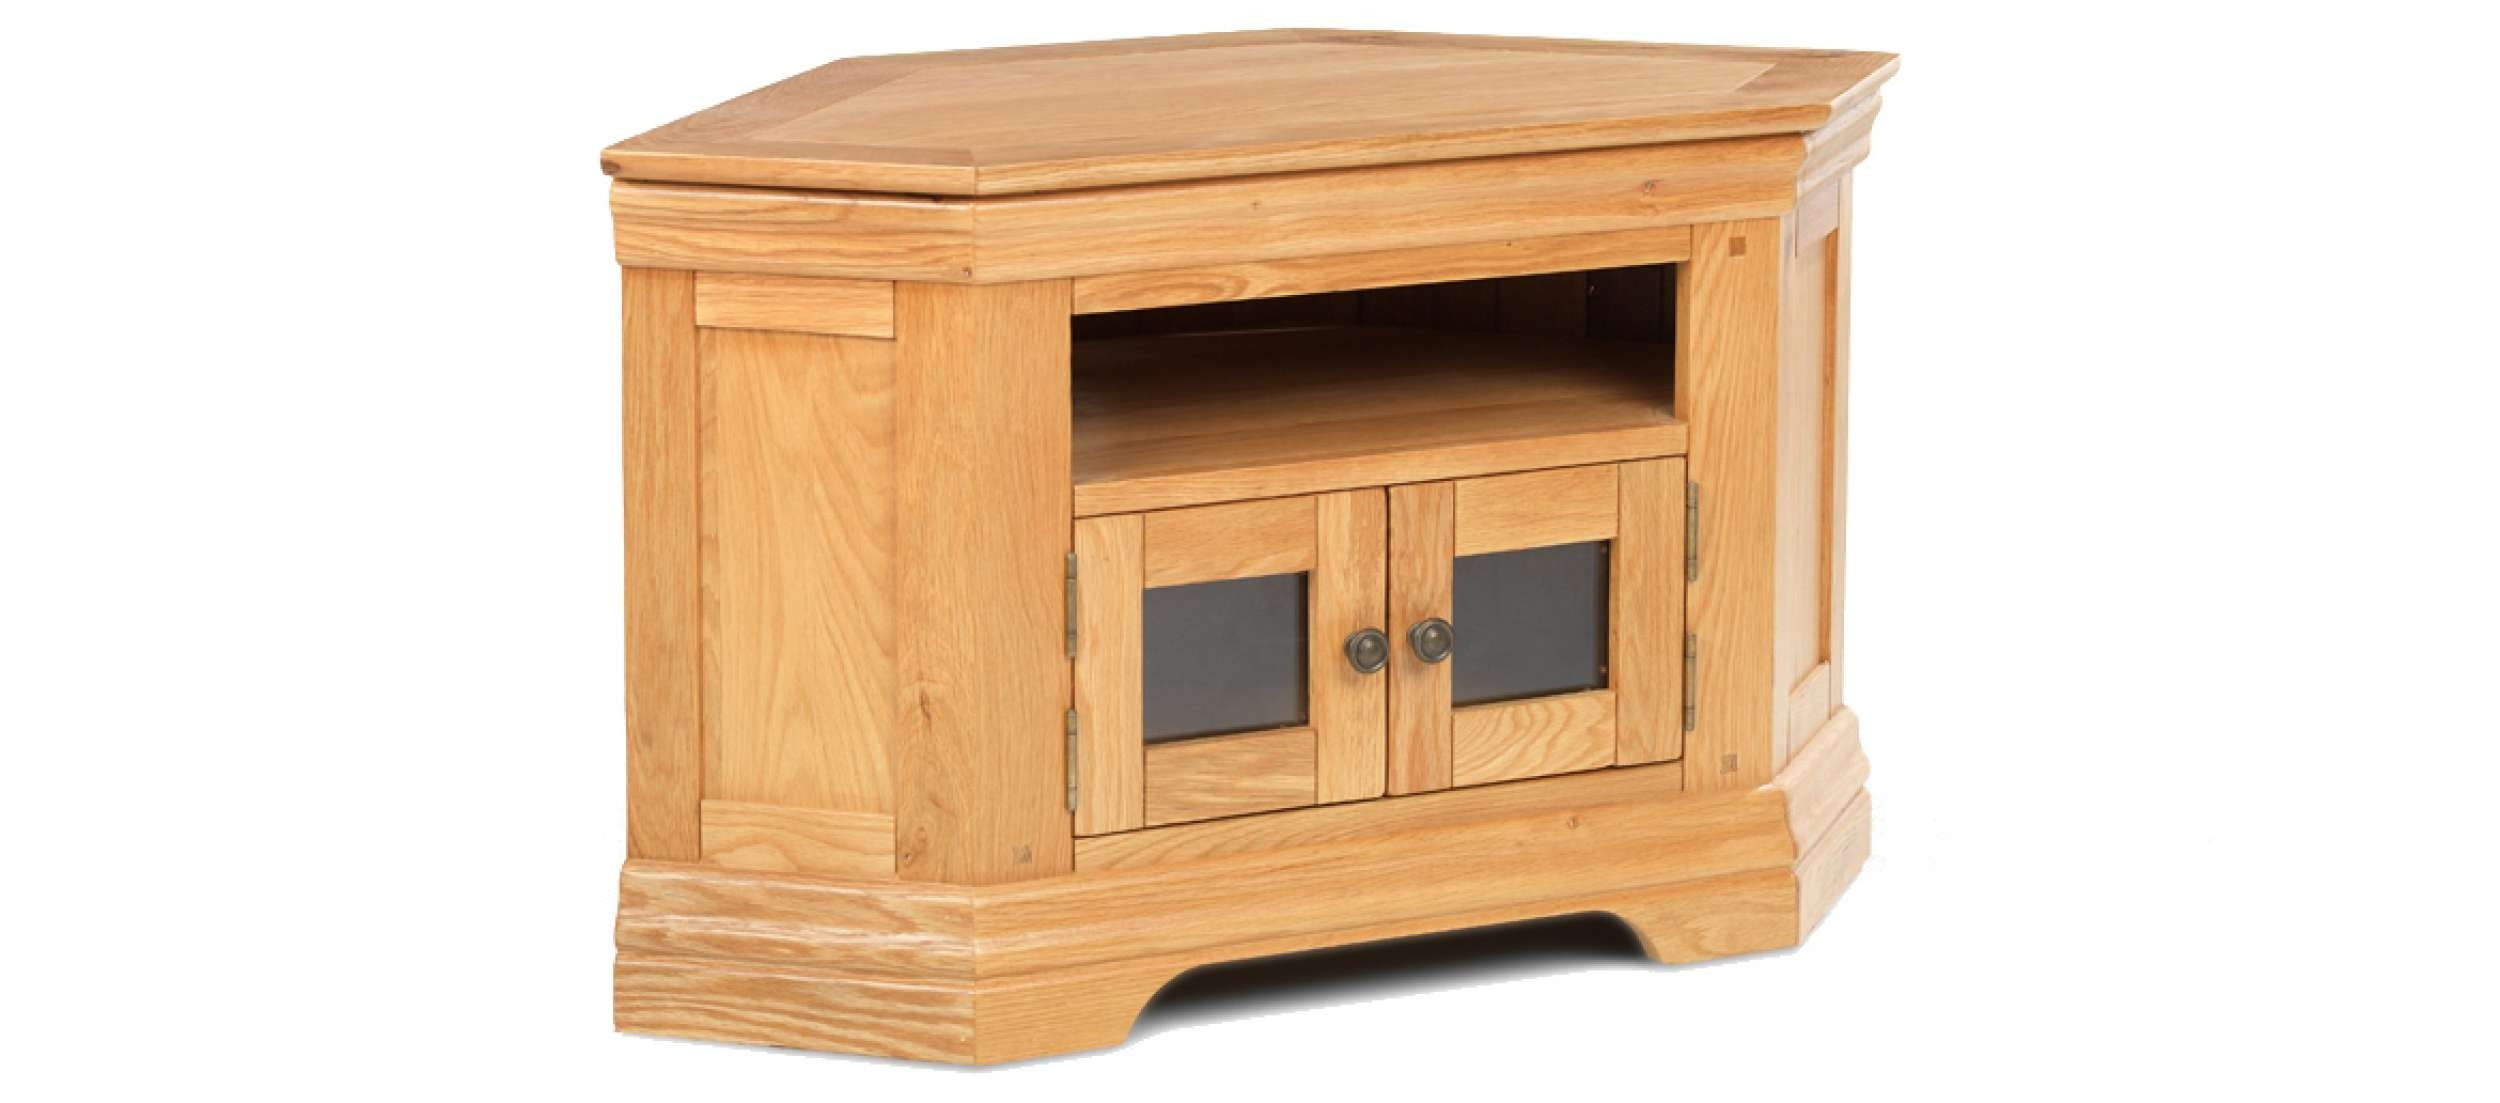 Constance Oak Corner Tv Cabinet | Quercus Living With Oak Corner Tv Cabinets (View 2 of 20)